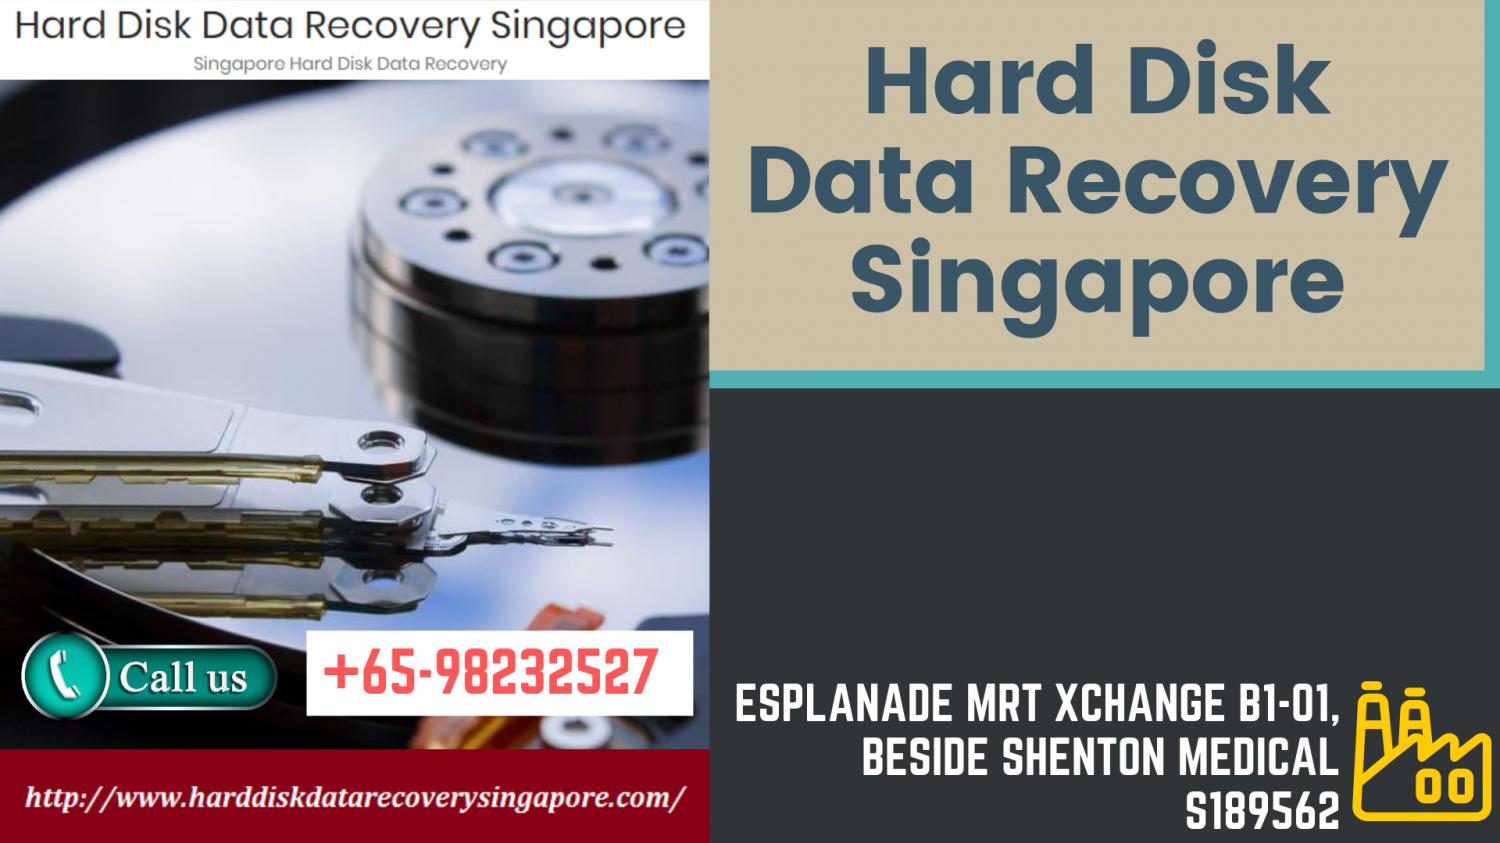 Data Recovery Service at Hard Disk Data Recovery Singapore Infographic